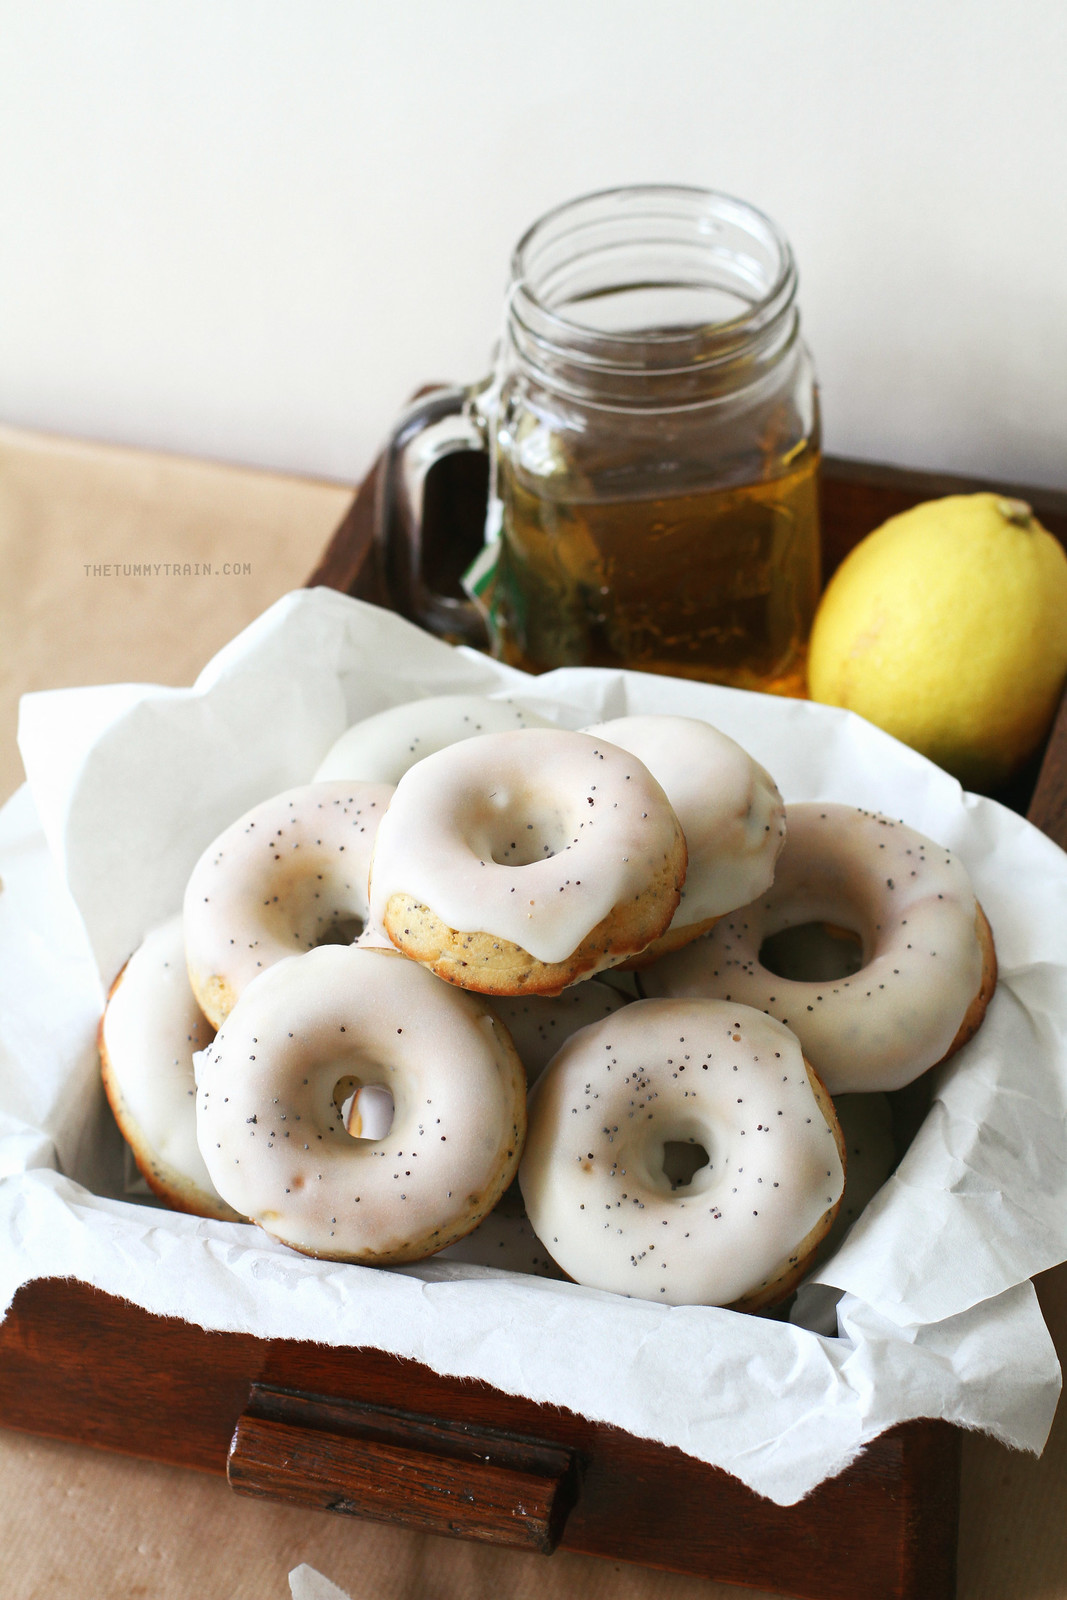 28150446645 c739f17aaf h - Digging out these Baked Lemon Poppyseed Doughnuts from my archives